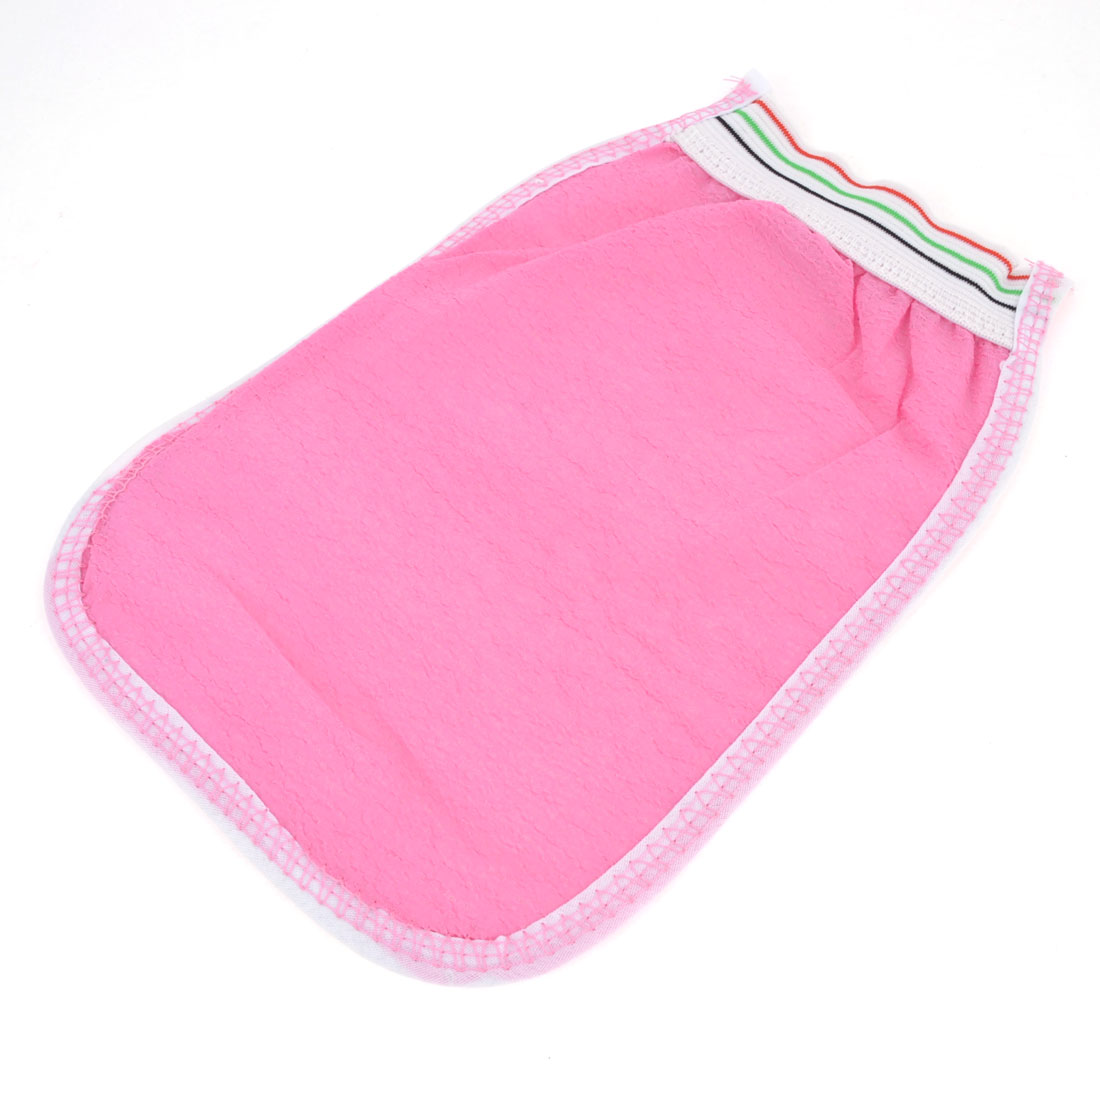 Bathroom Fibre Mesh Cotton Shower Bath Glove Mitt Pink White